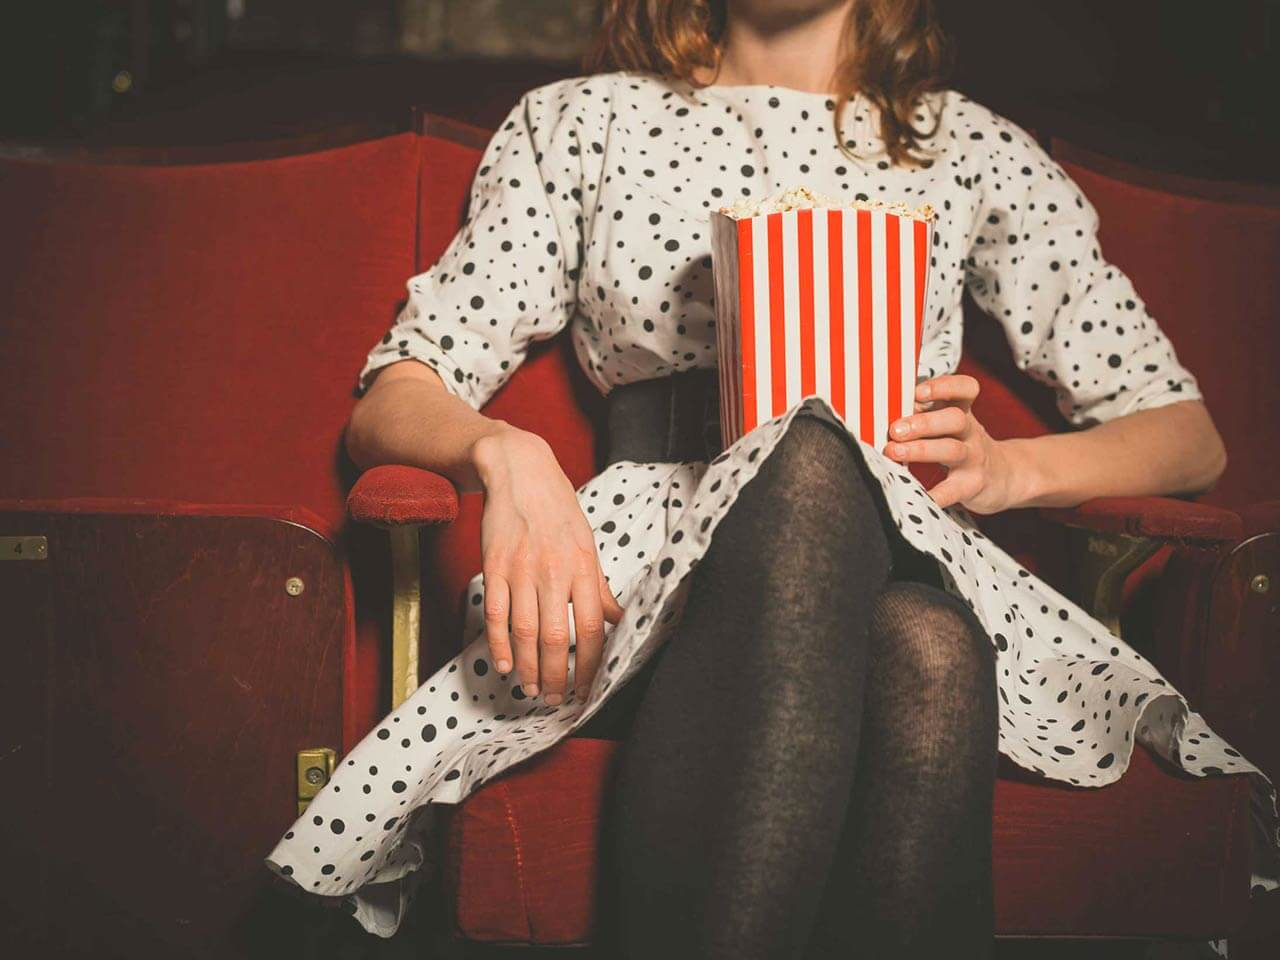 woman at cinema with popcorn